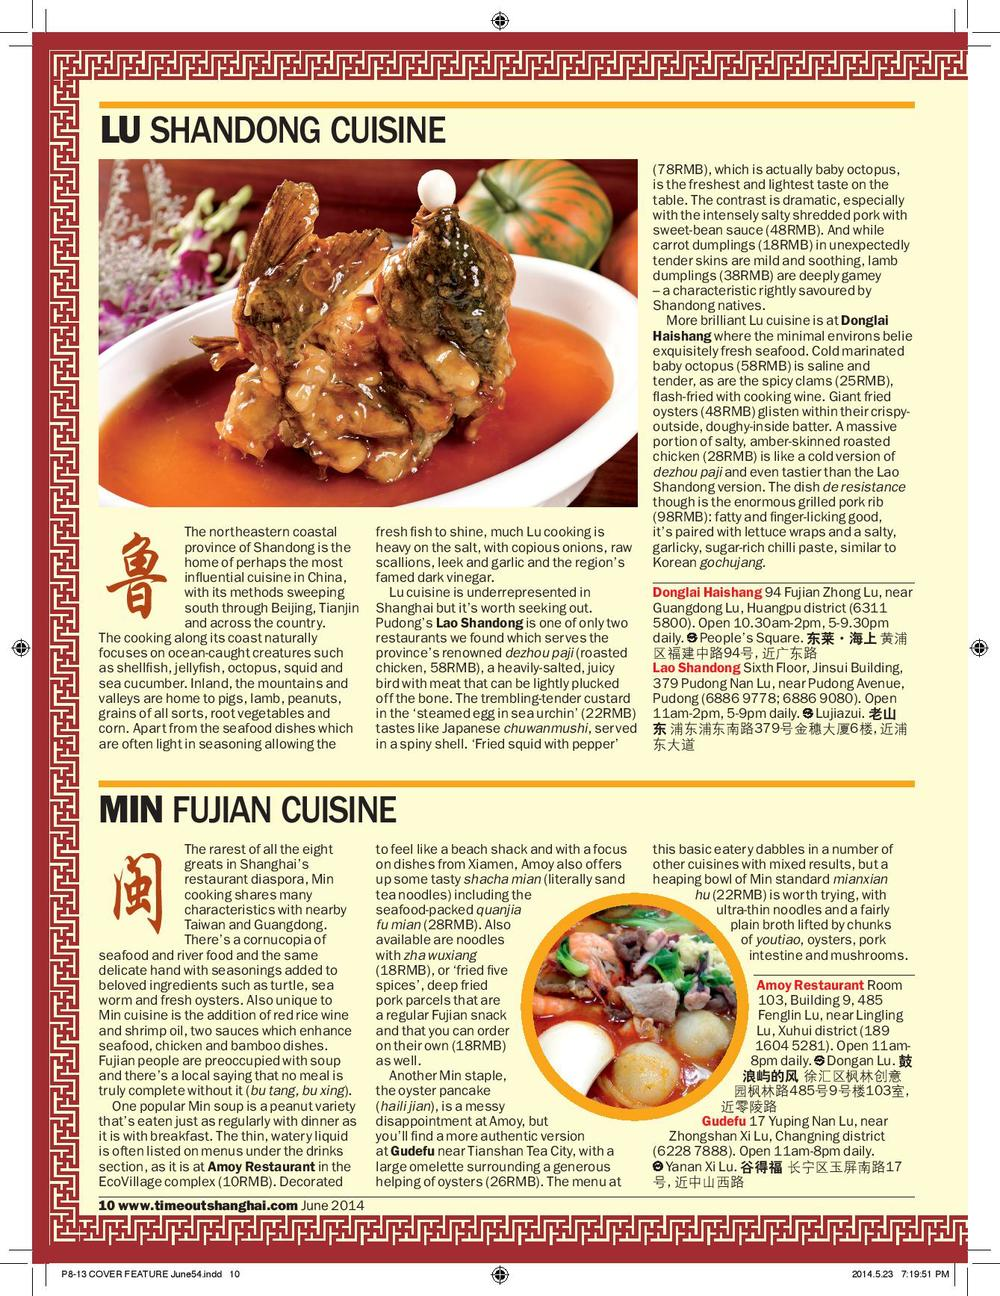 P8-13 COVER FEATURE Eight Great Cuisines June 2014-page-003.jpg